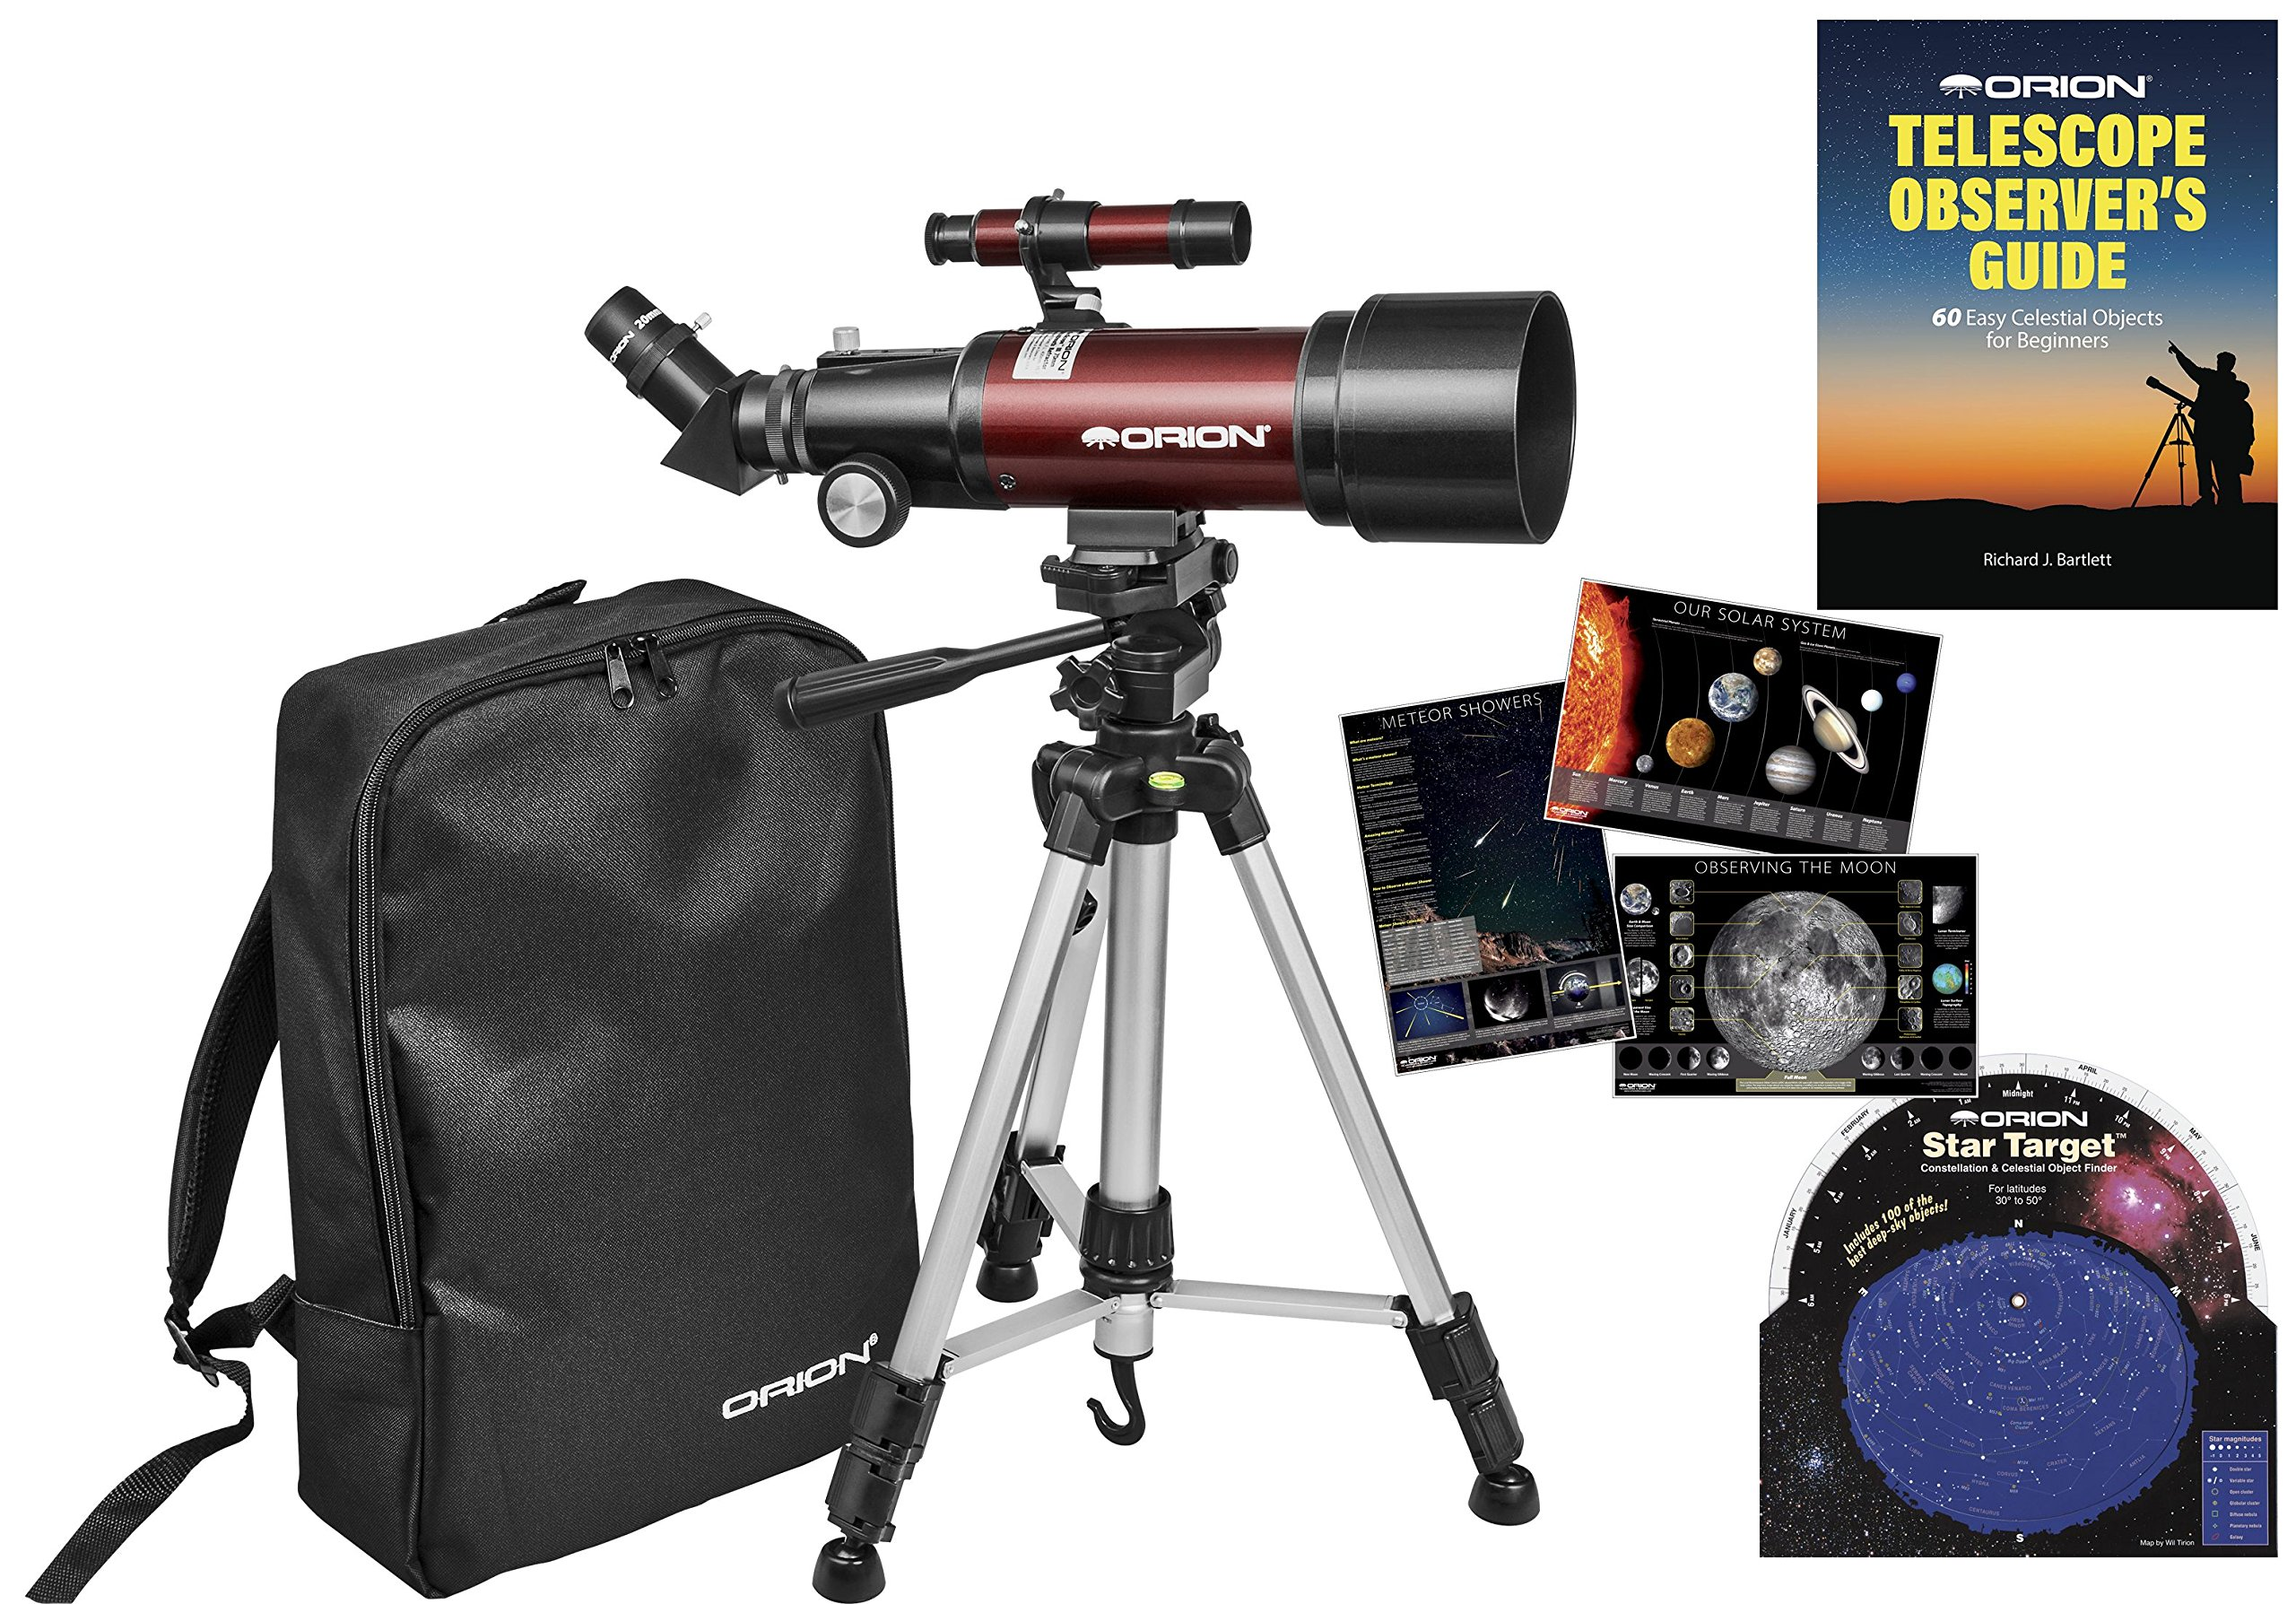 Orion GoScope III 70mm Refractor Travel Telescope Kit by Orion